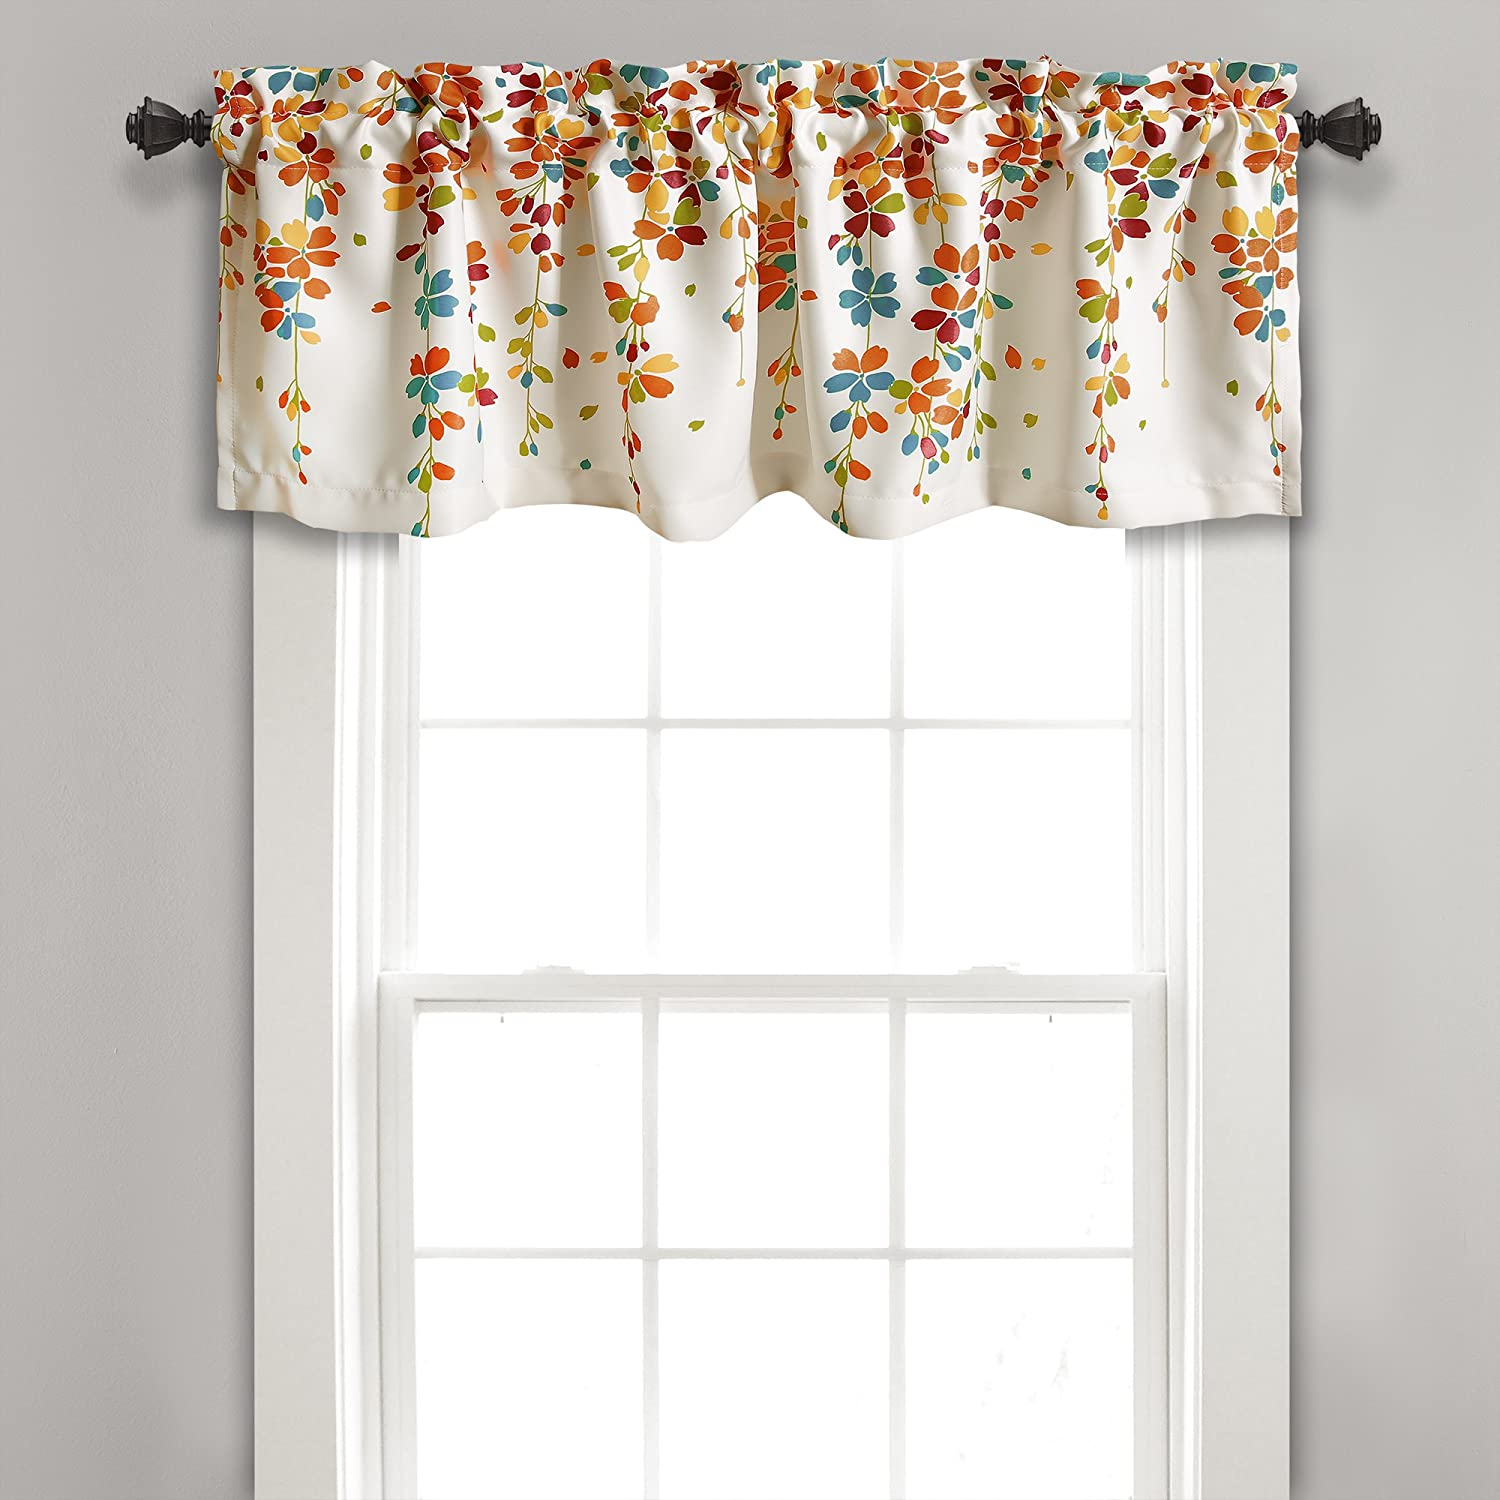 "Lush Decor Weeping Flowers Turquoise and Tangerine Valance Curtain for Windows, 18"" x 52"""